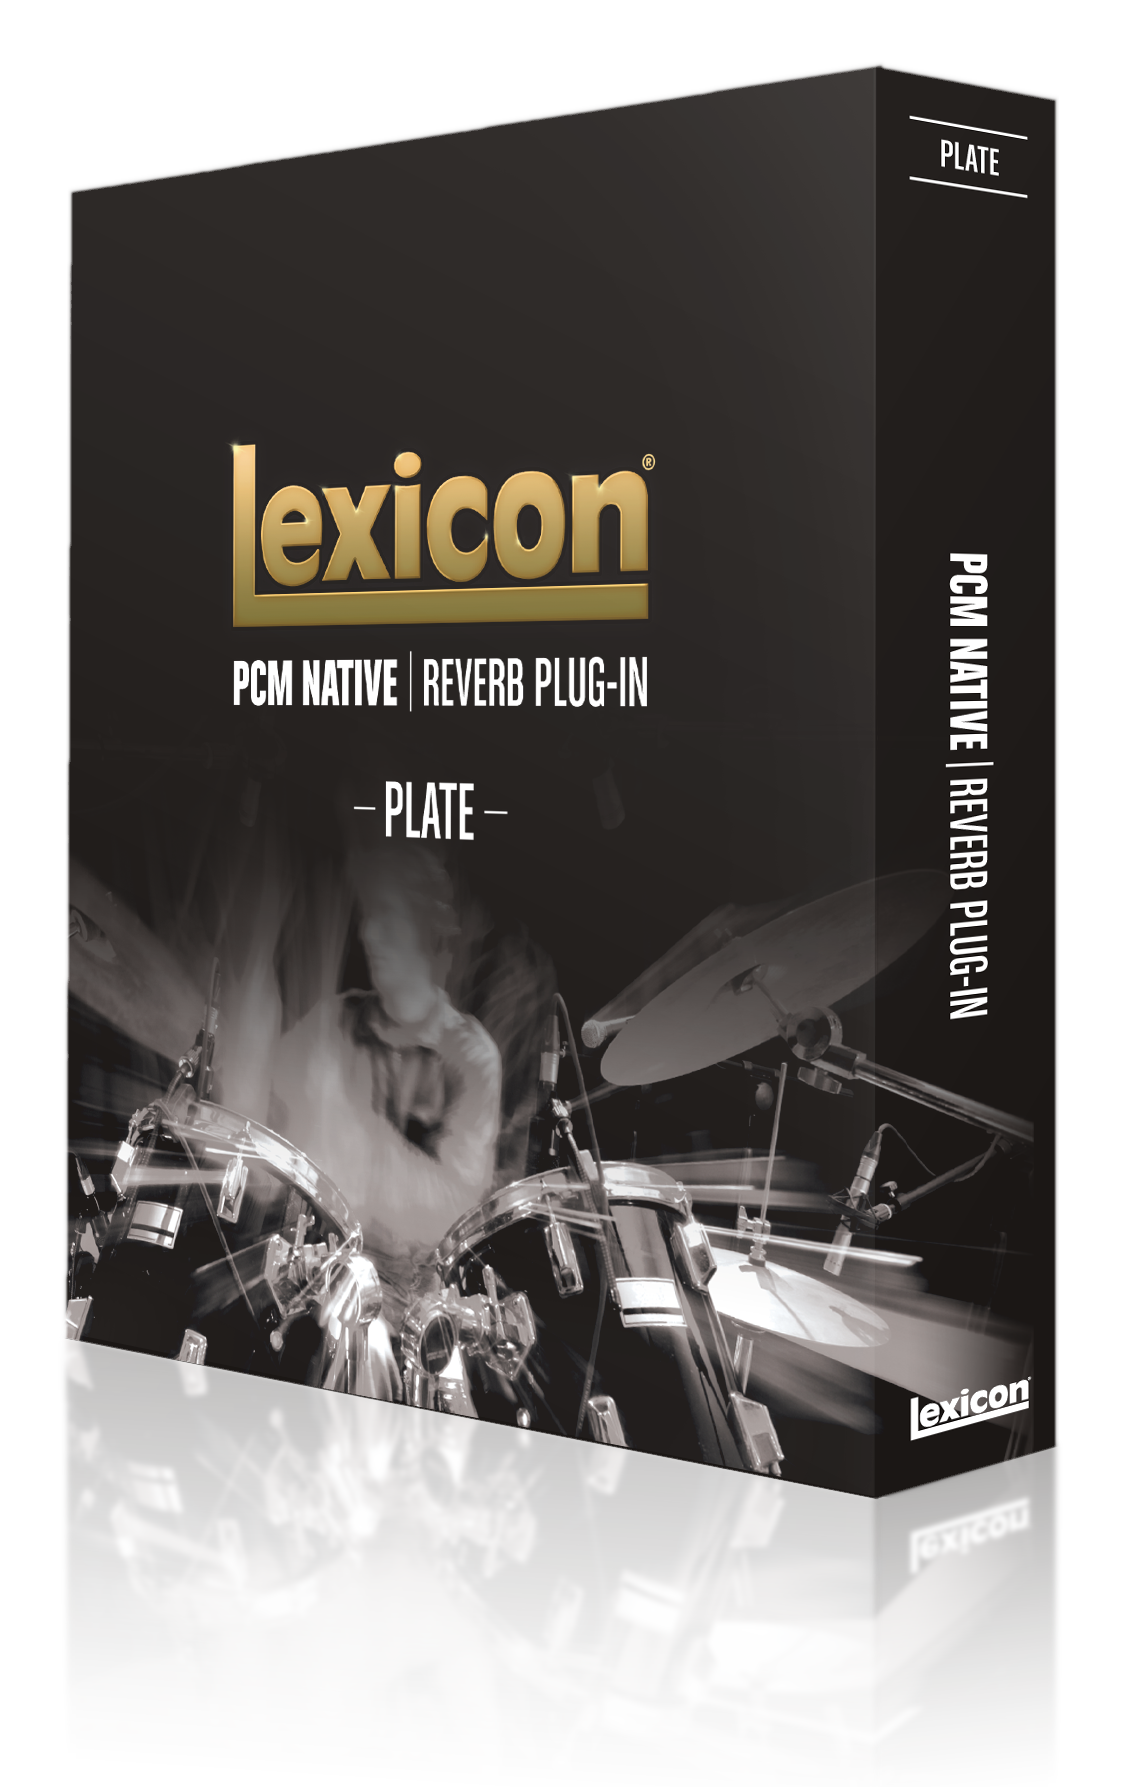 PCM Native Plate Reverb | Lexicon Pro - Legendary Reverb and